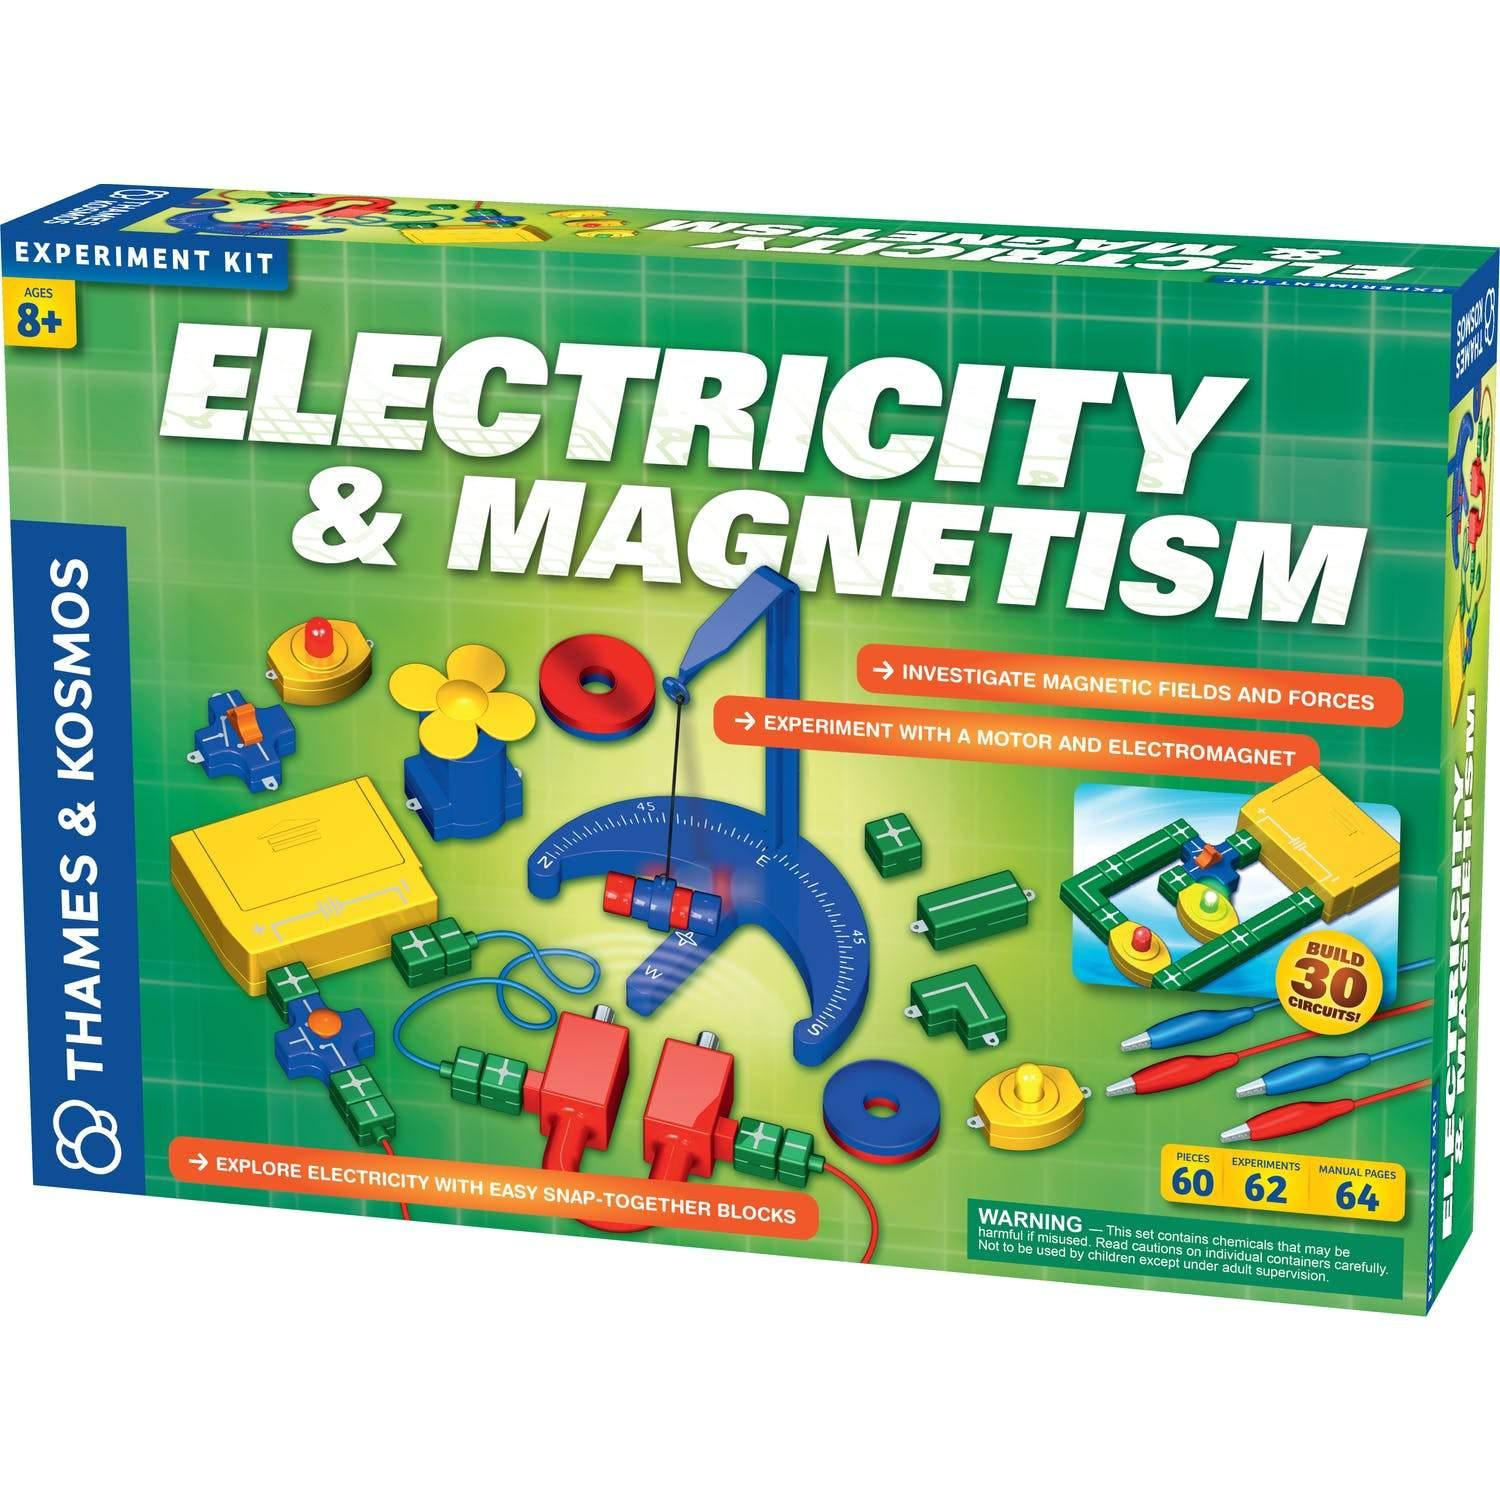 Electricity & Magnetism-2